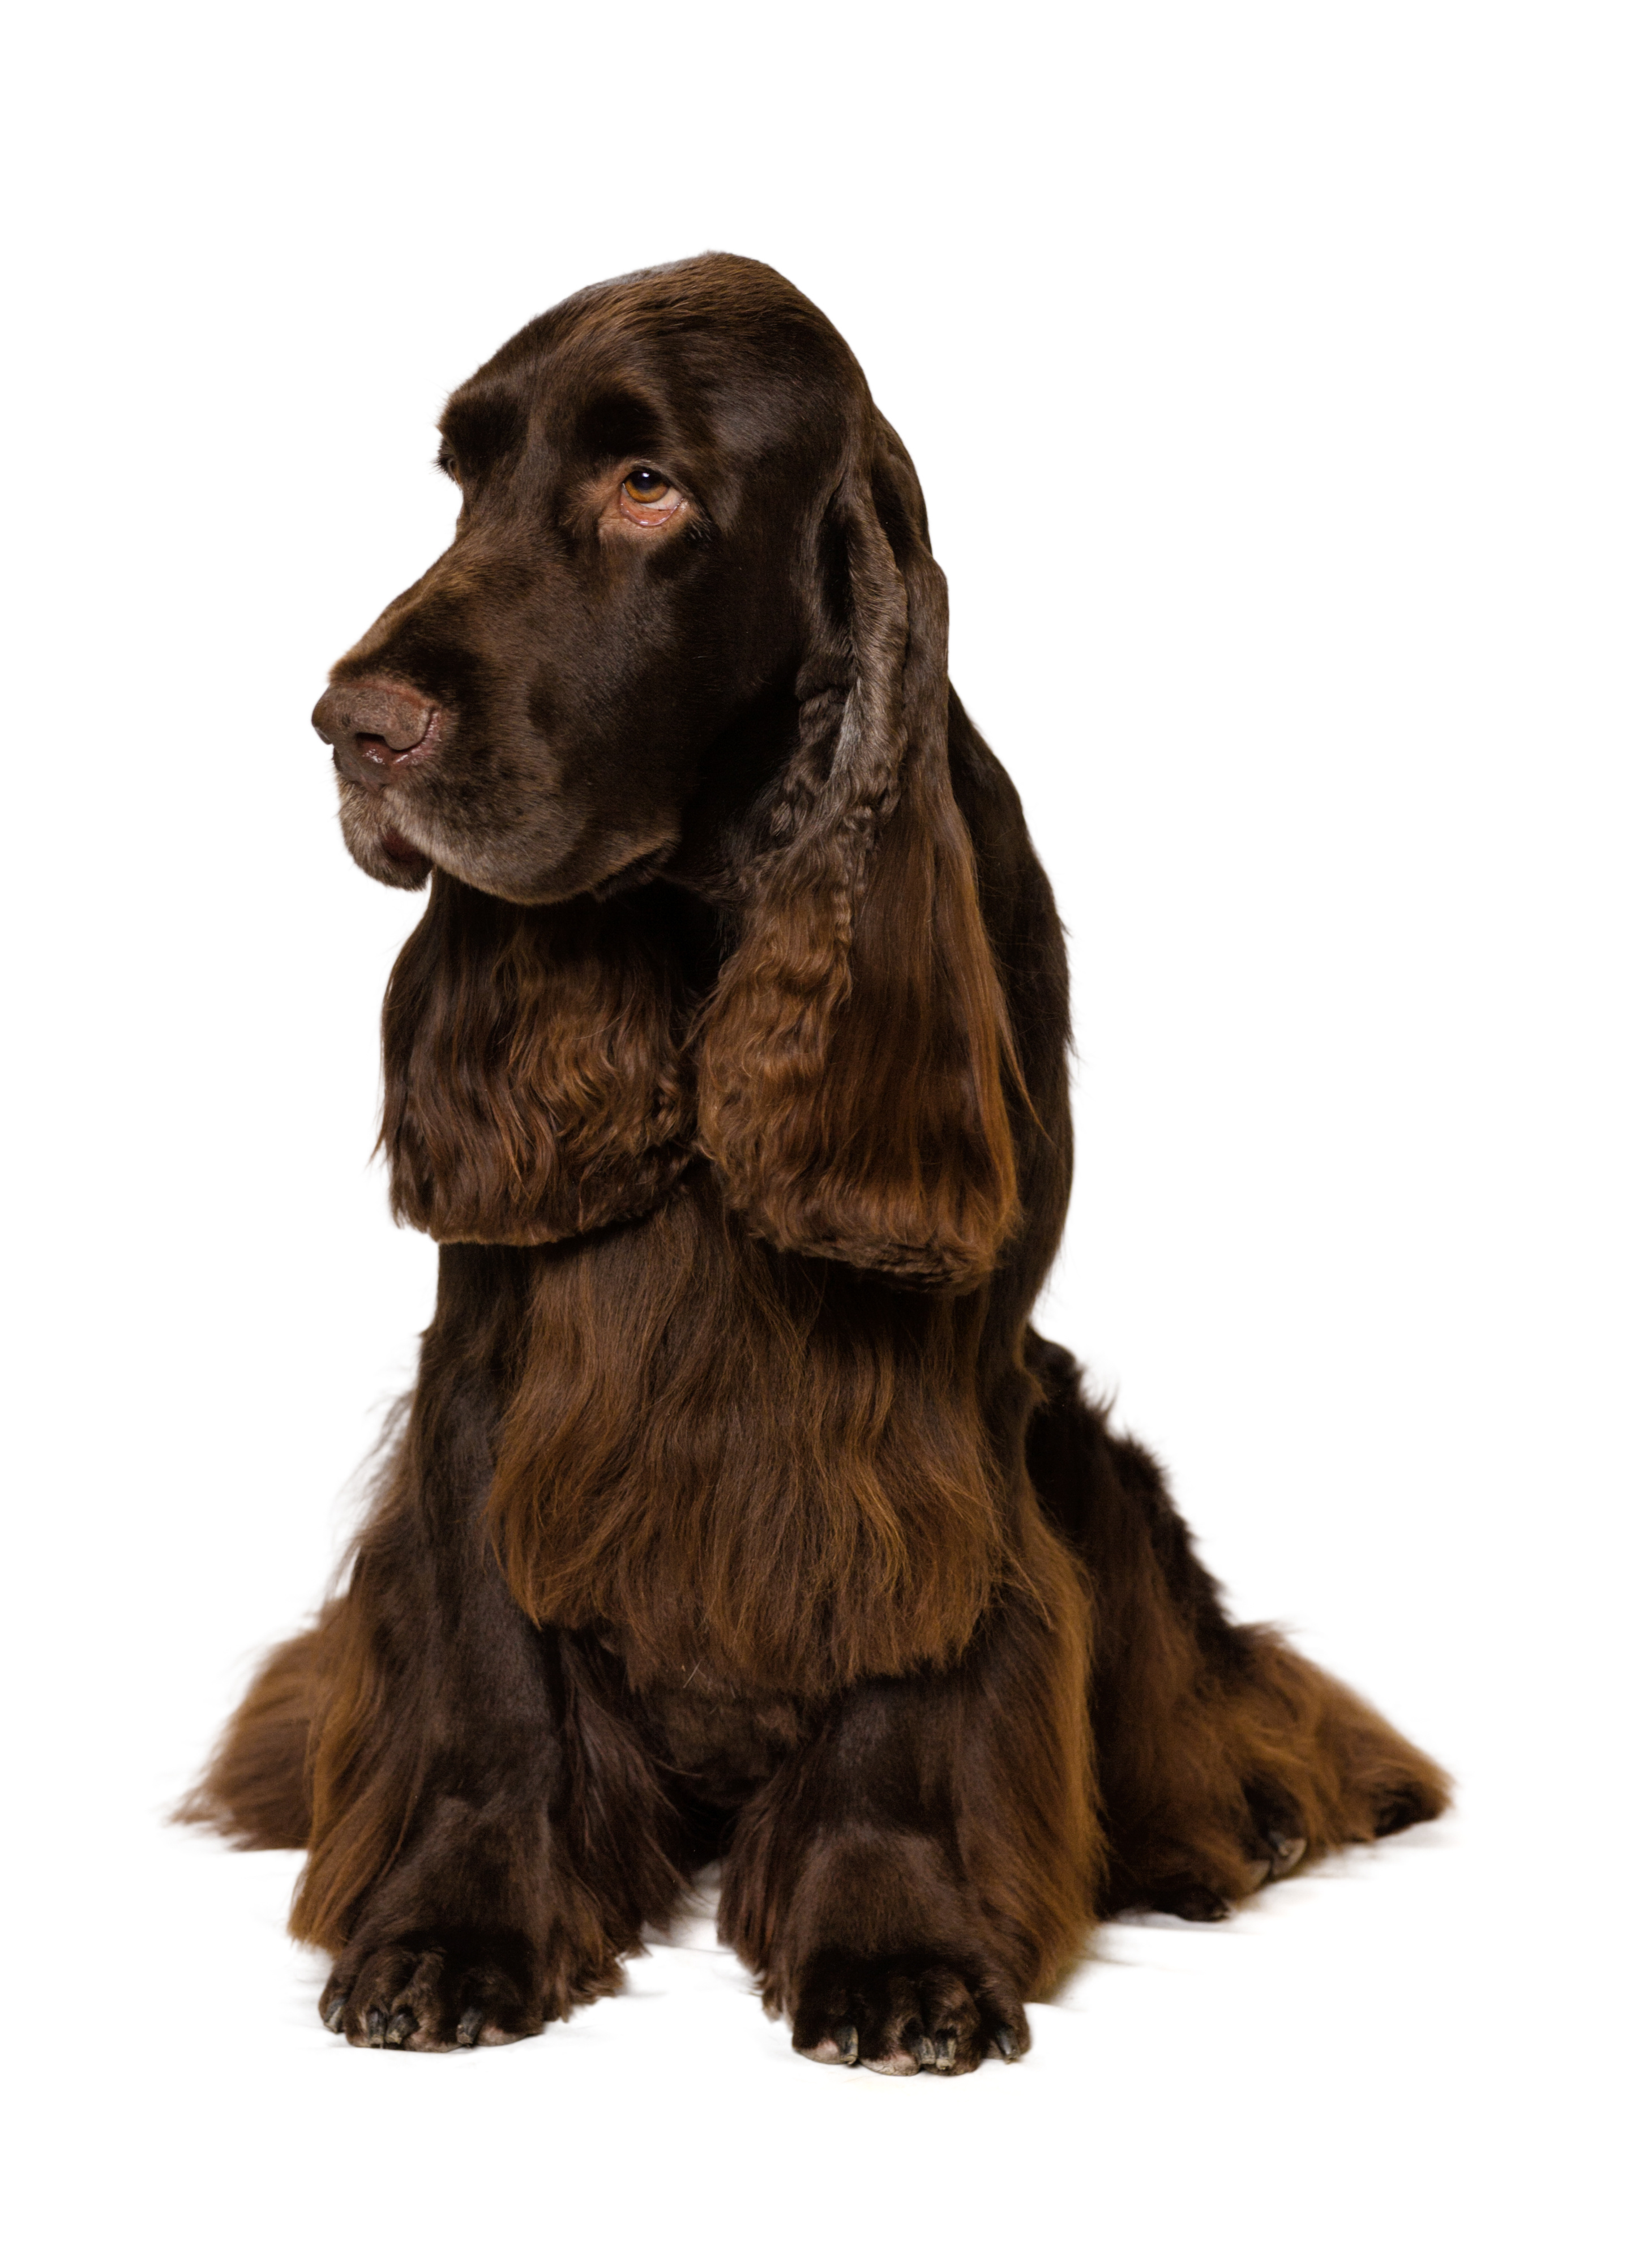 Field Spaniel sitting in front of a white background